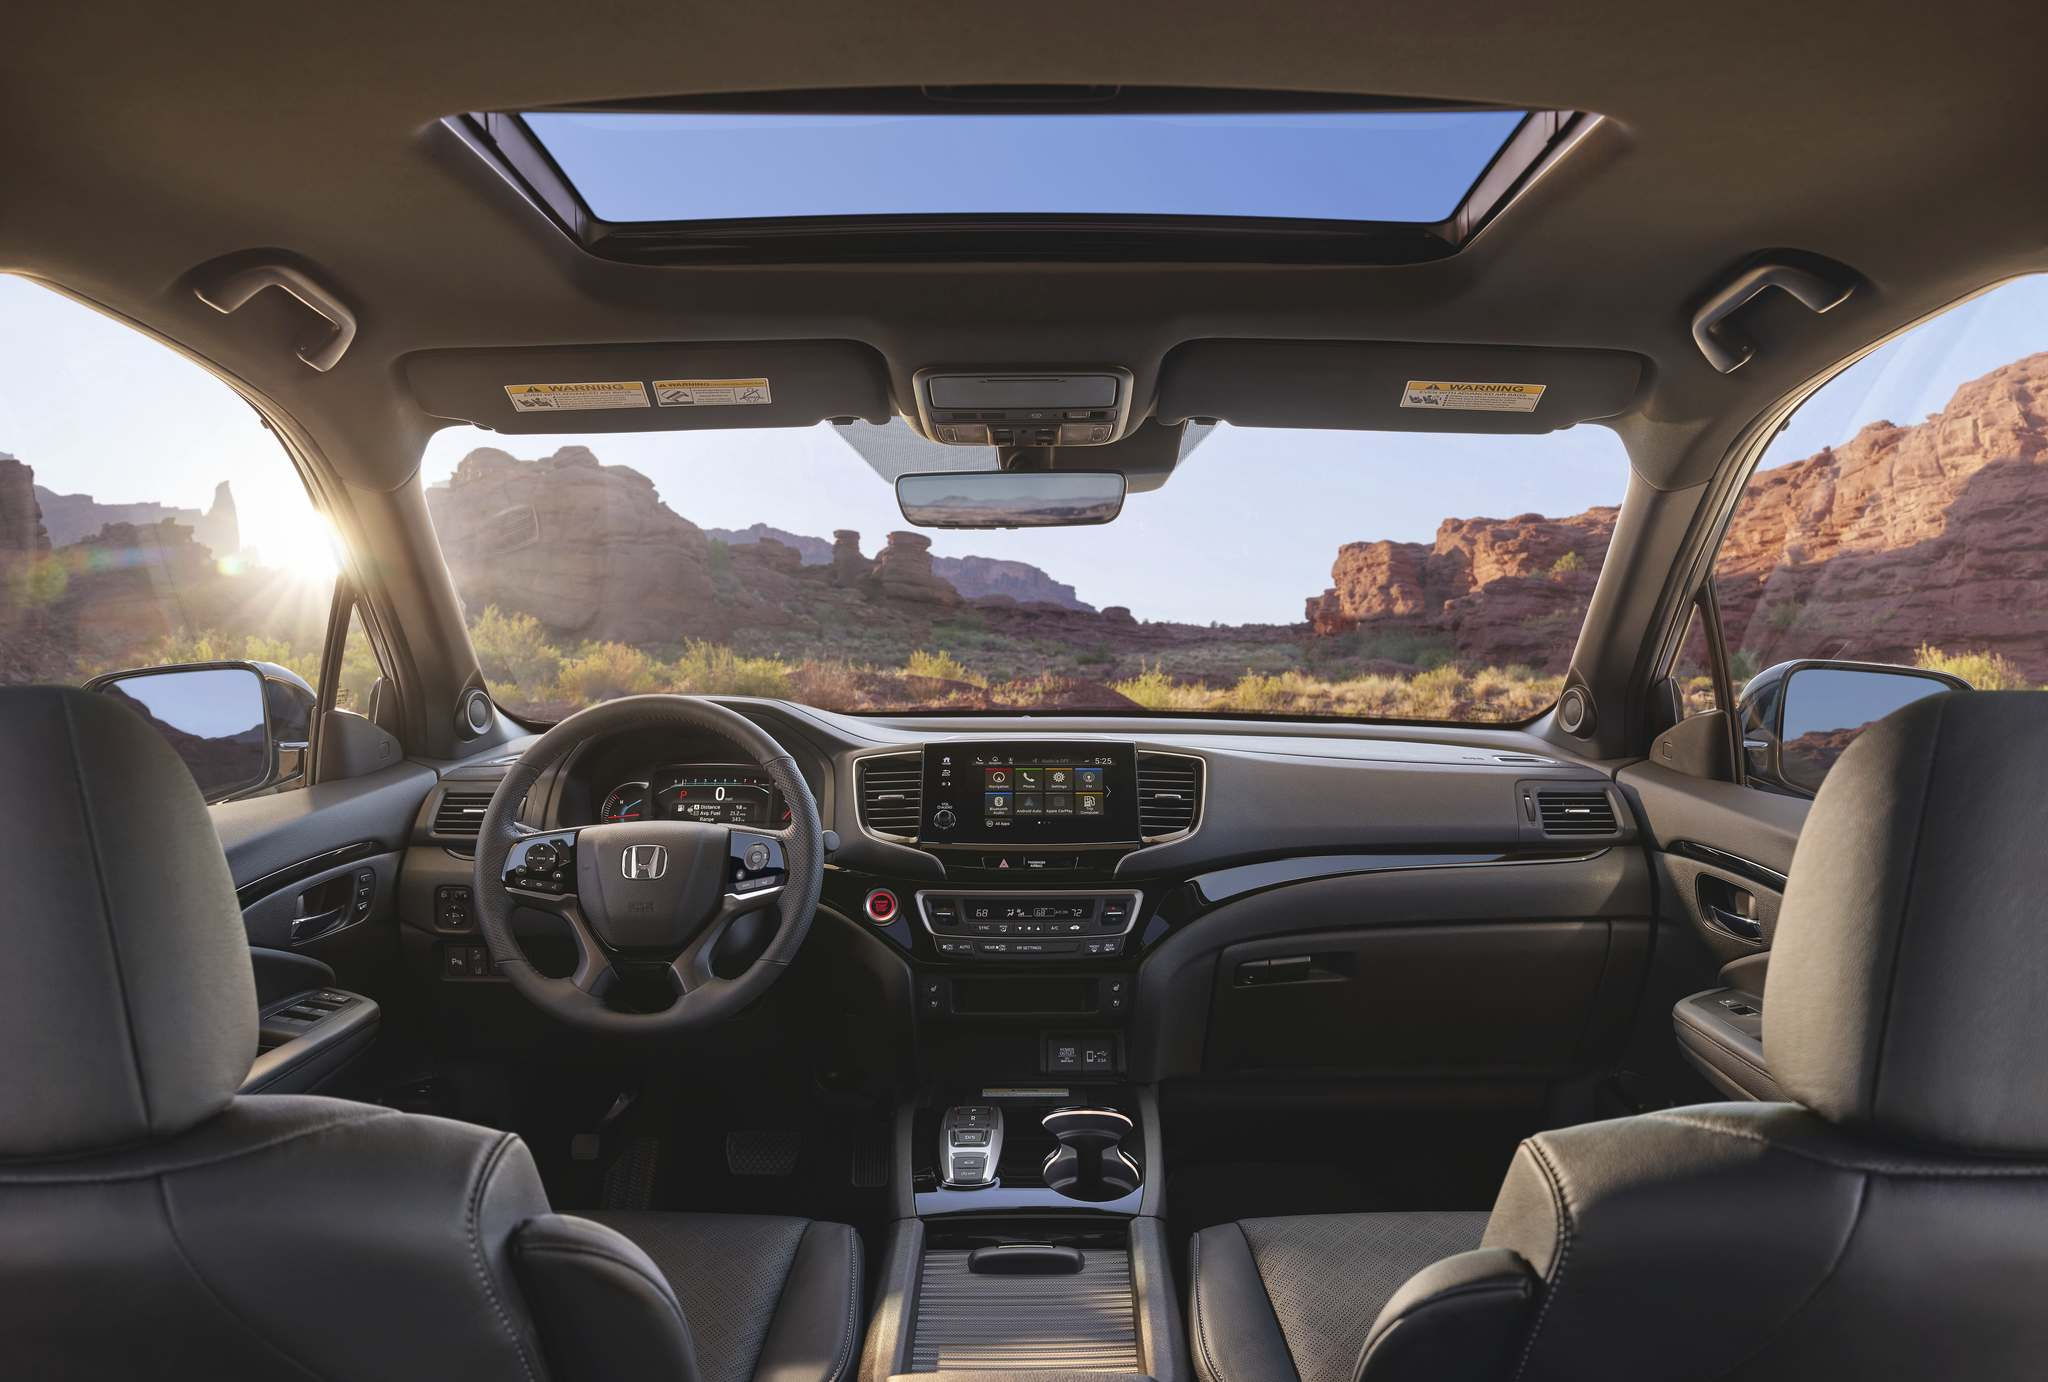 The 2019 Passport's interior is loaded with technology, including a touchscreen display.